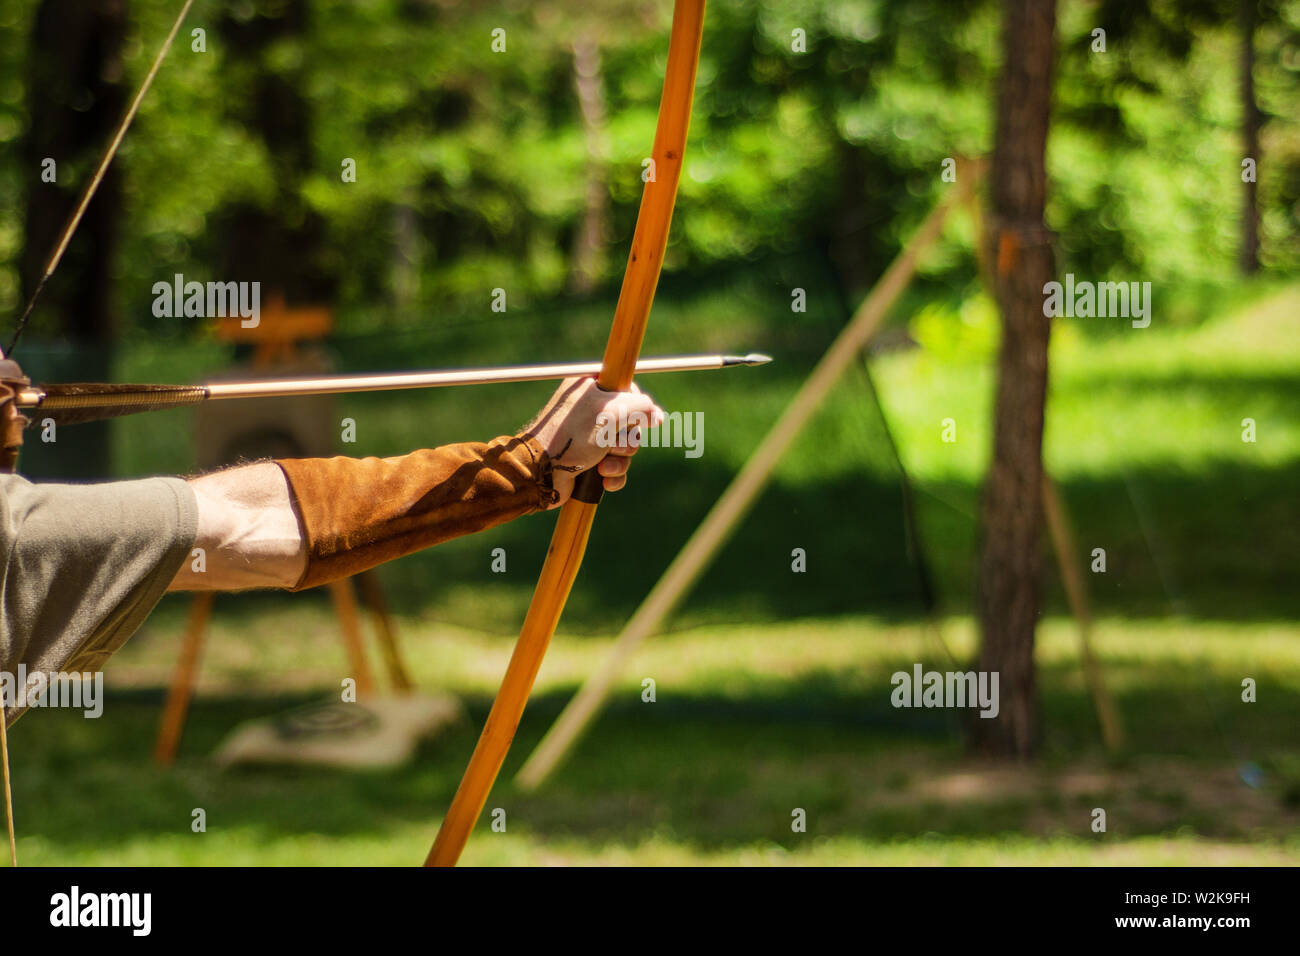 Man medieval archer hand holds his bow with an arrow and aiming at the target outdoor activity in the forest. Medieval sport concept. Close up - Stock Image